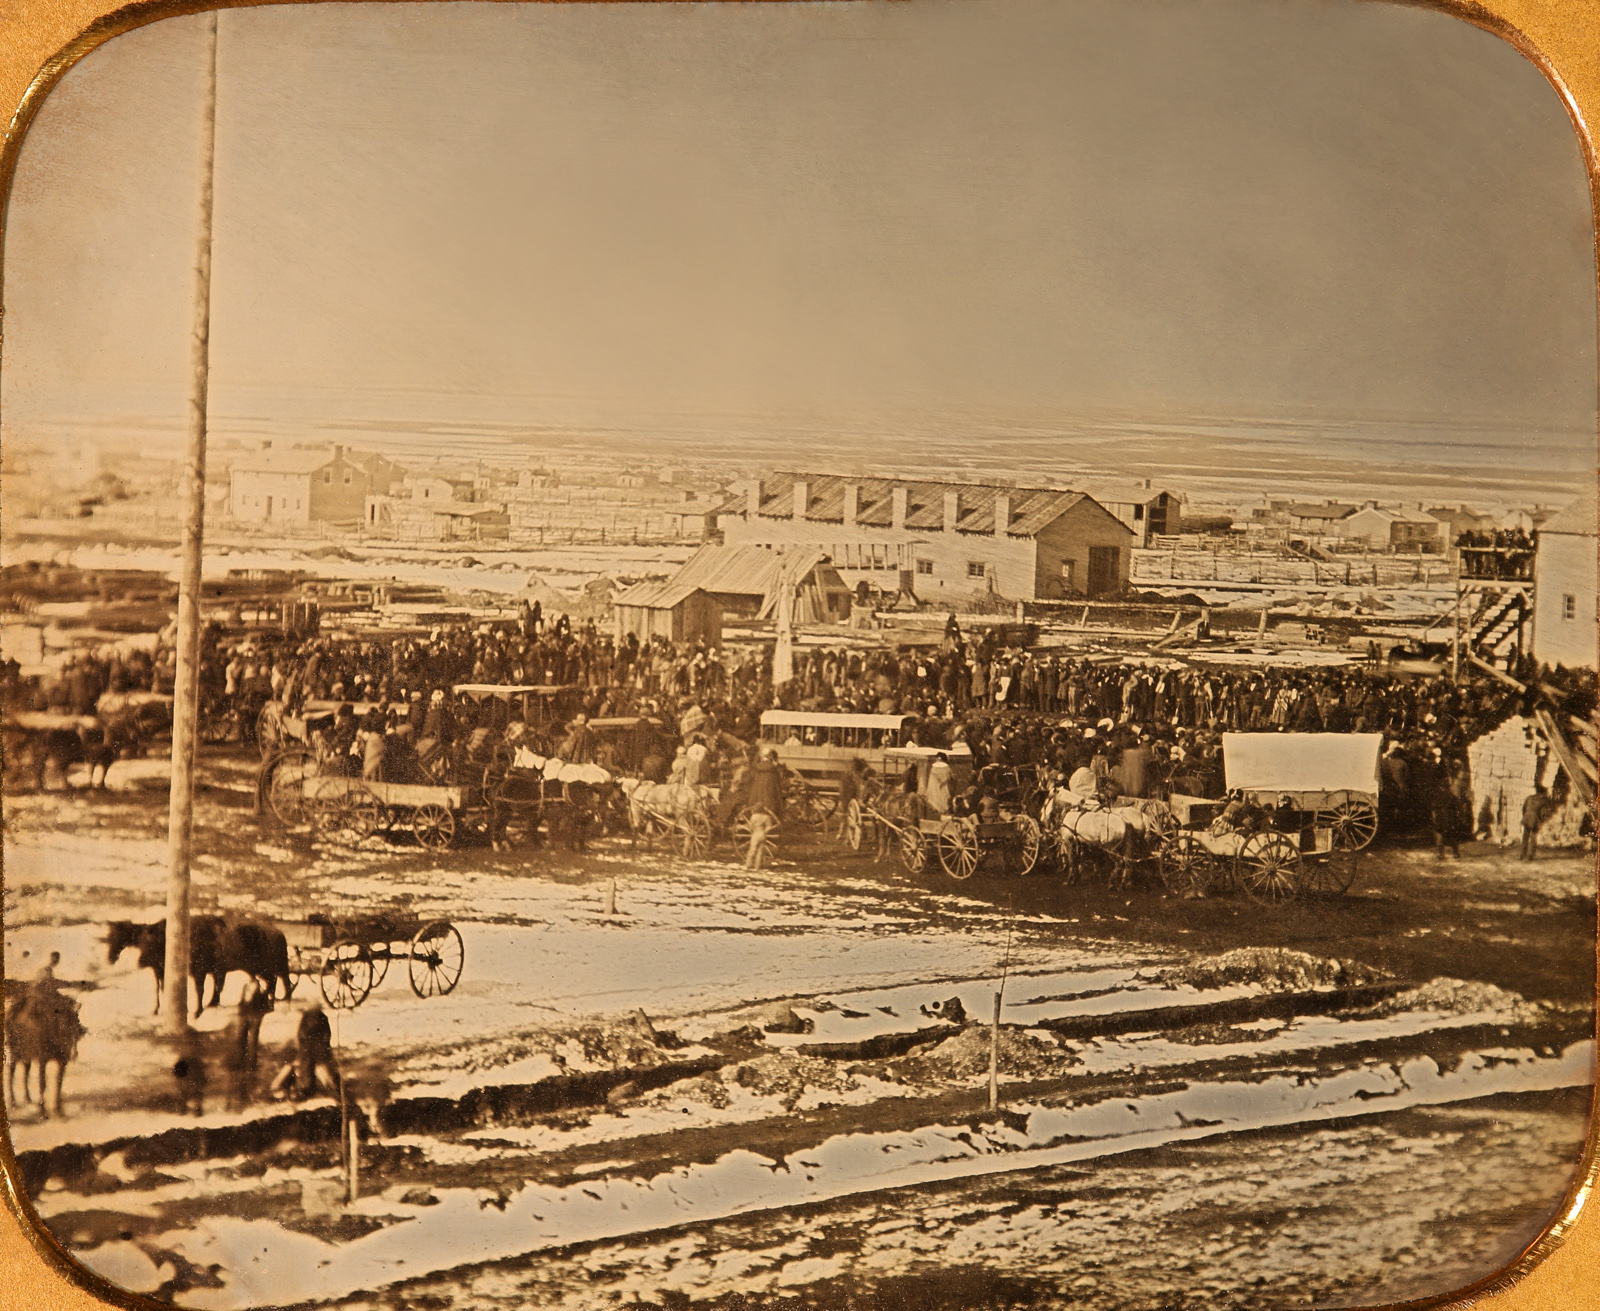 Latter-day Saint leaders and others gathered by horse and buggy for the Salt Lake Temple groundbreaking ceremony Feb. 14, 1853, captured in this daguerreotype recovered by The Church of Jesus Christ of Latter-day Saints in the early 1990s about a decade after its apparent theft from the Church History Department. The temple took 40 years to build.